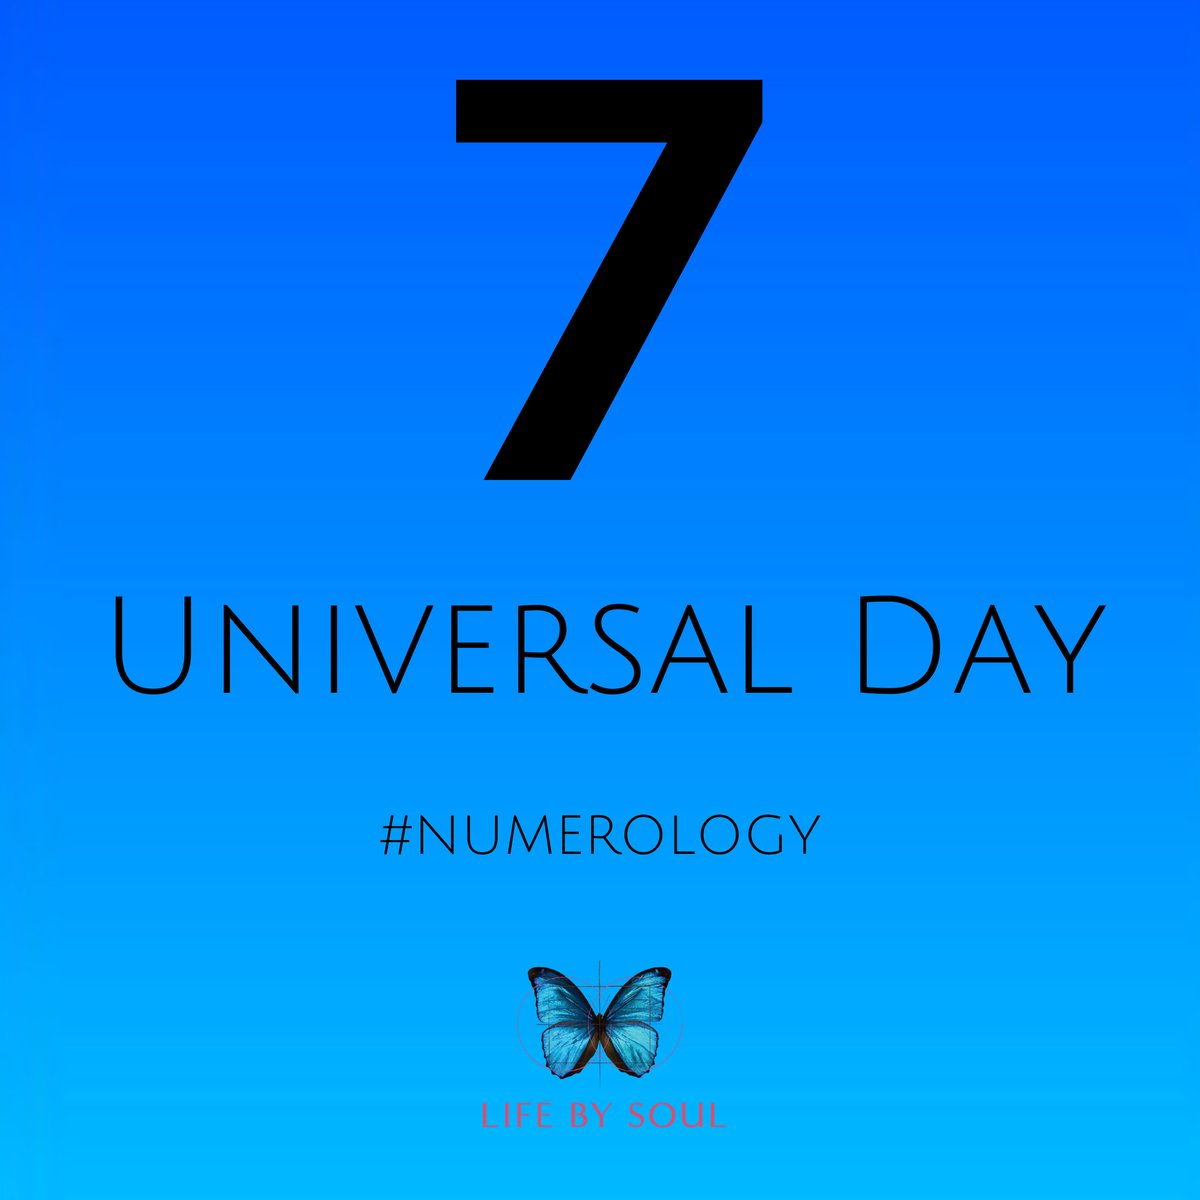 This #7UniversalDay is a moment to #pause, #TakeADeepBreath, & #AskYourself - how did you get to this moment #HereAndNow? Know that whether you chose to #honor your own #truth or follow another's, you are where you are now by your own #FreeWill. #choicesv#numerology #LifeBySoul